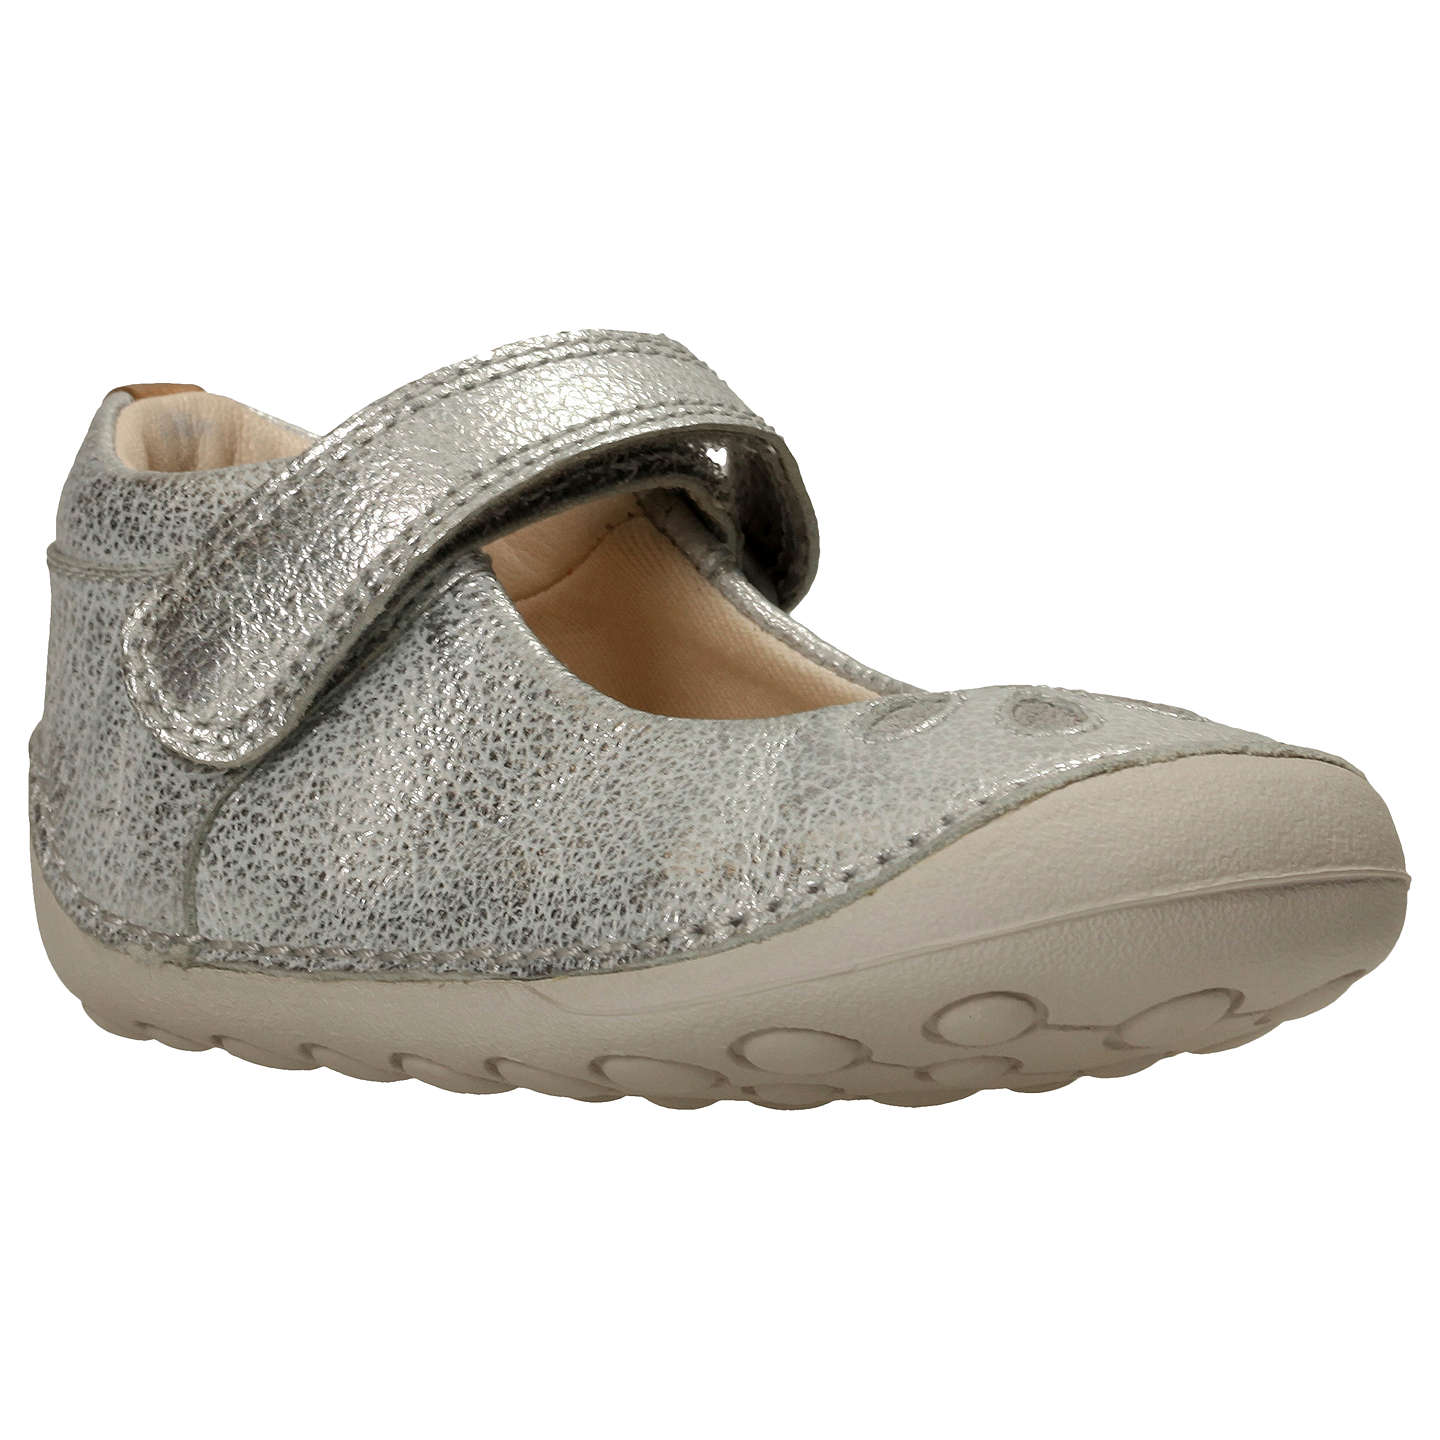 Clarks Children s Tiny Eden Pre Walker Shoes Silver at John Lewis